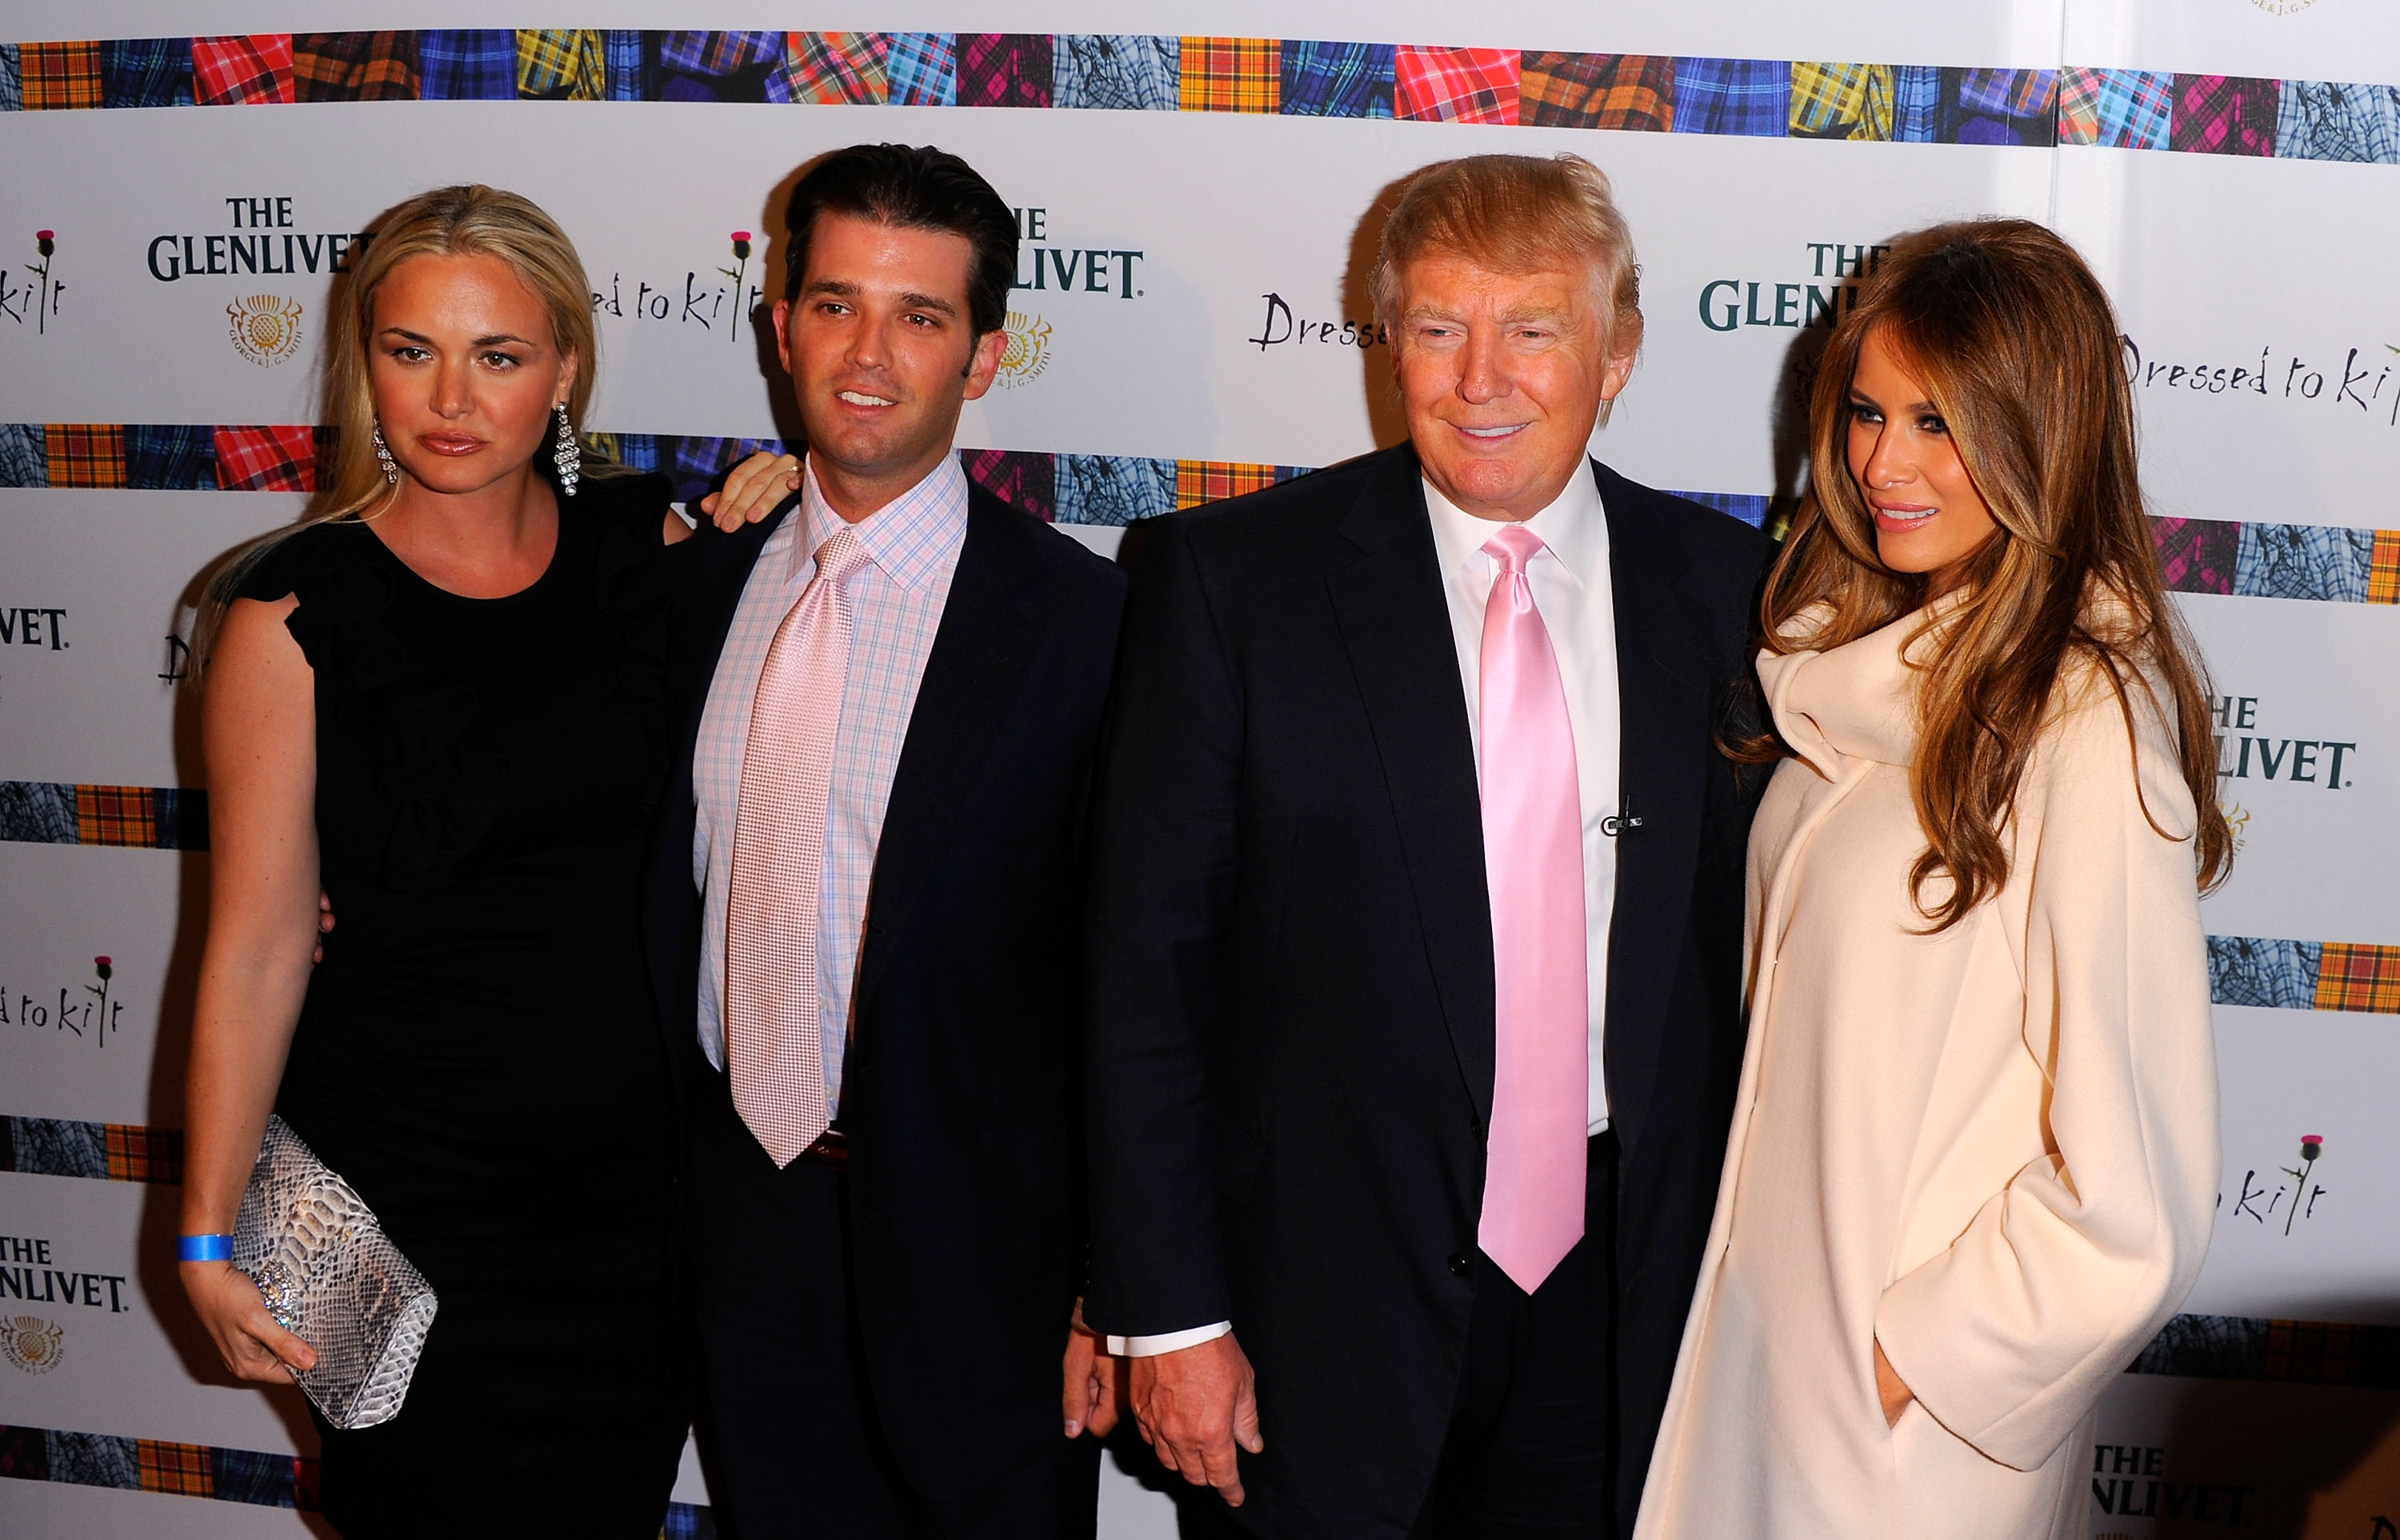 Donald Trump Jr.'s Secret Affair With Aubrey O'Day Revealed!